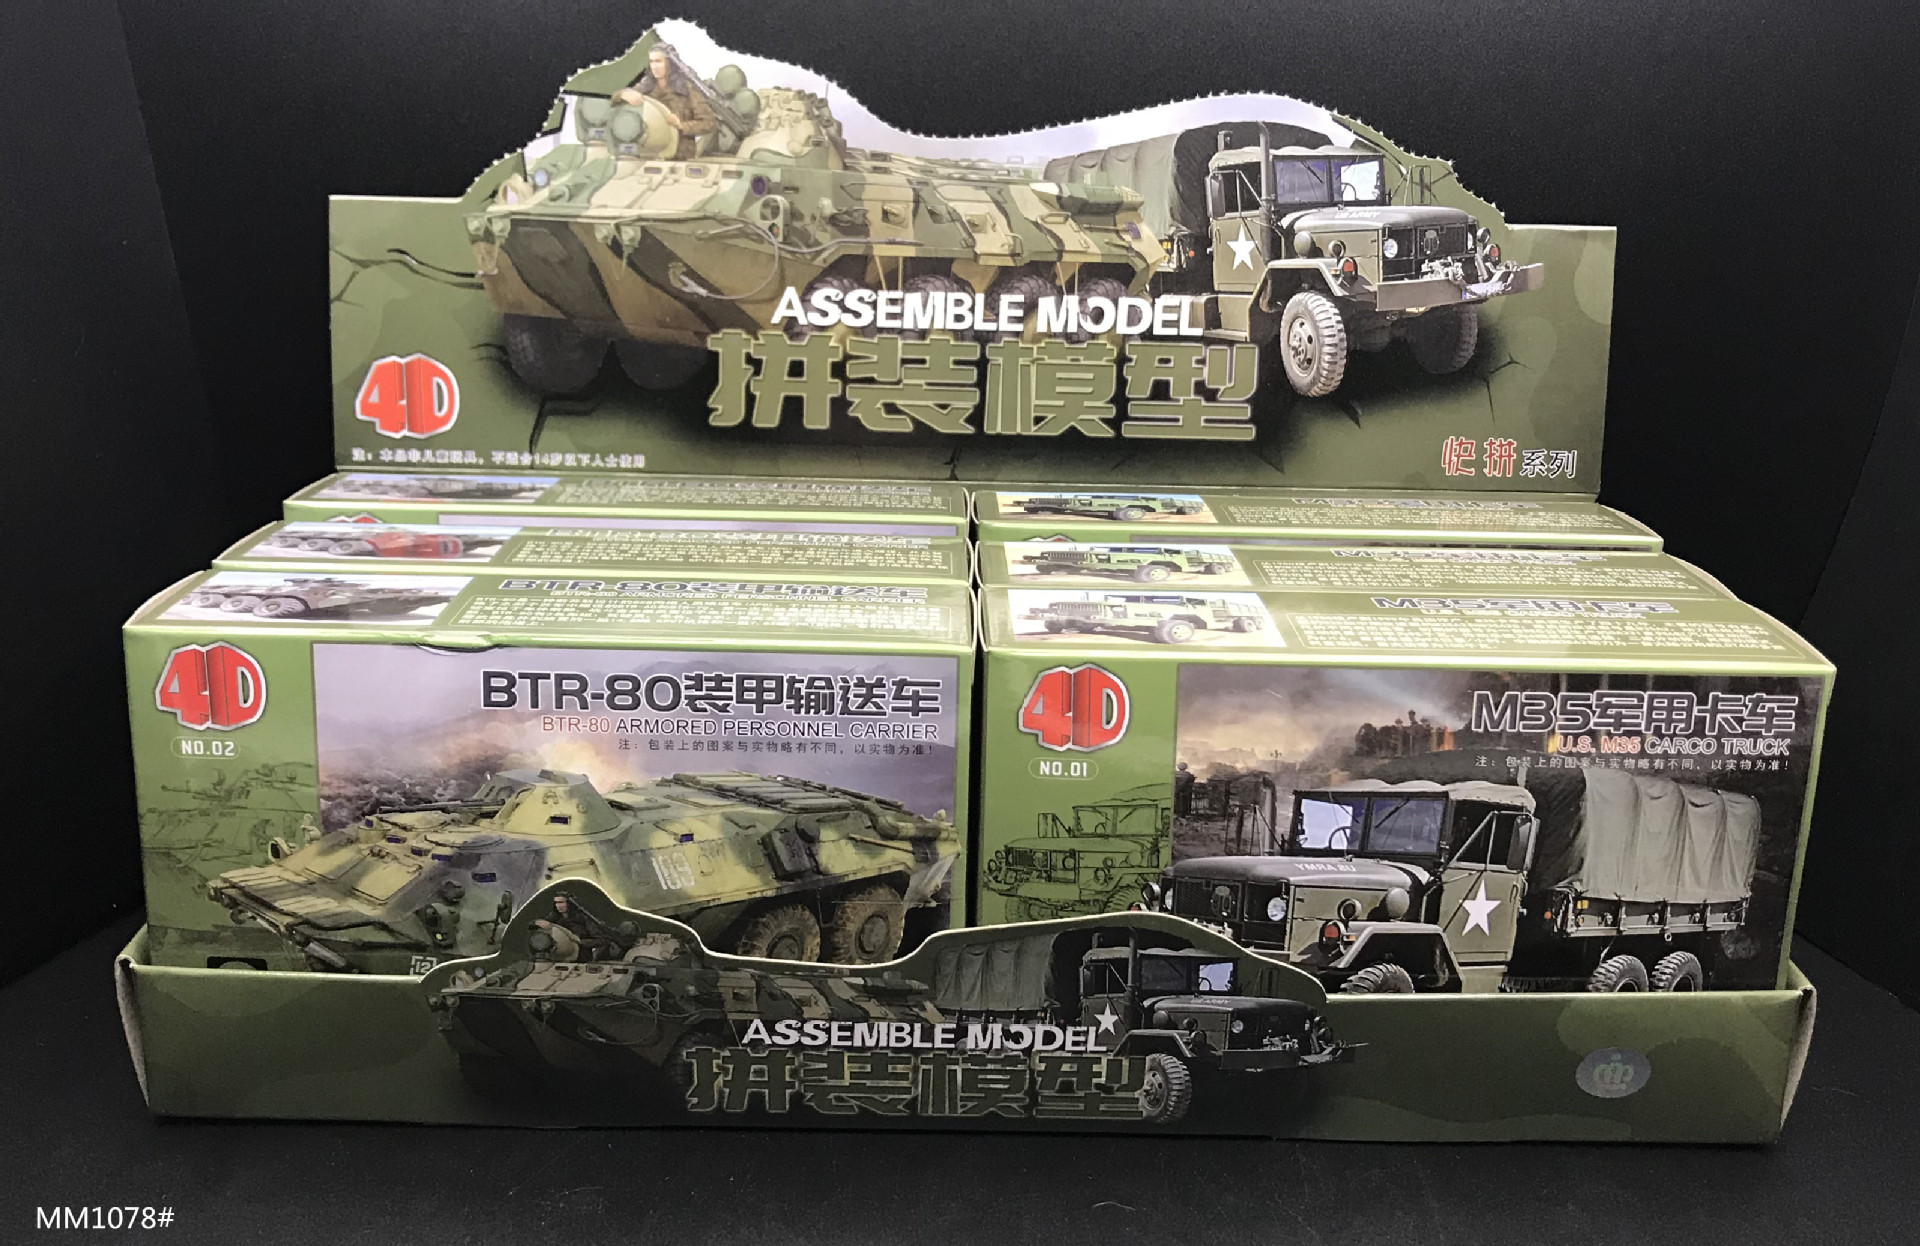 1:72 Military Vehicle M35 Truck Btr80 Armored Vehicle 1/72 Model DIY Puzzle Assembly Toy